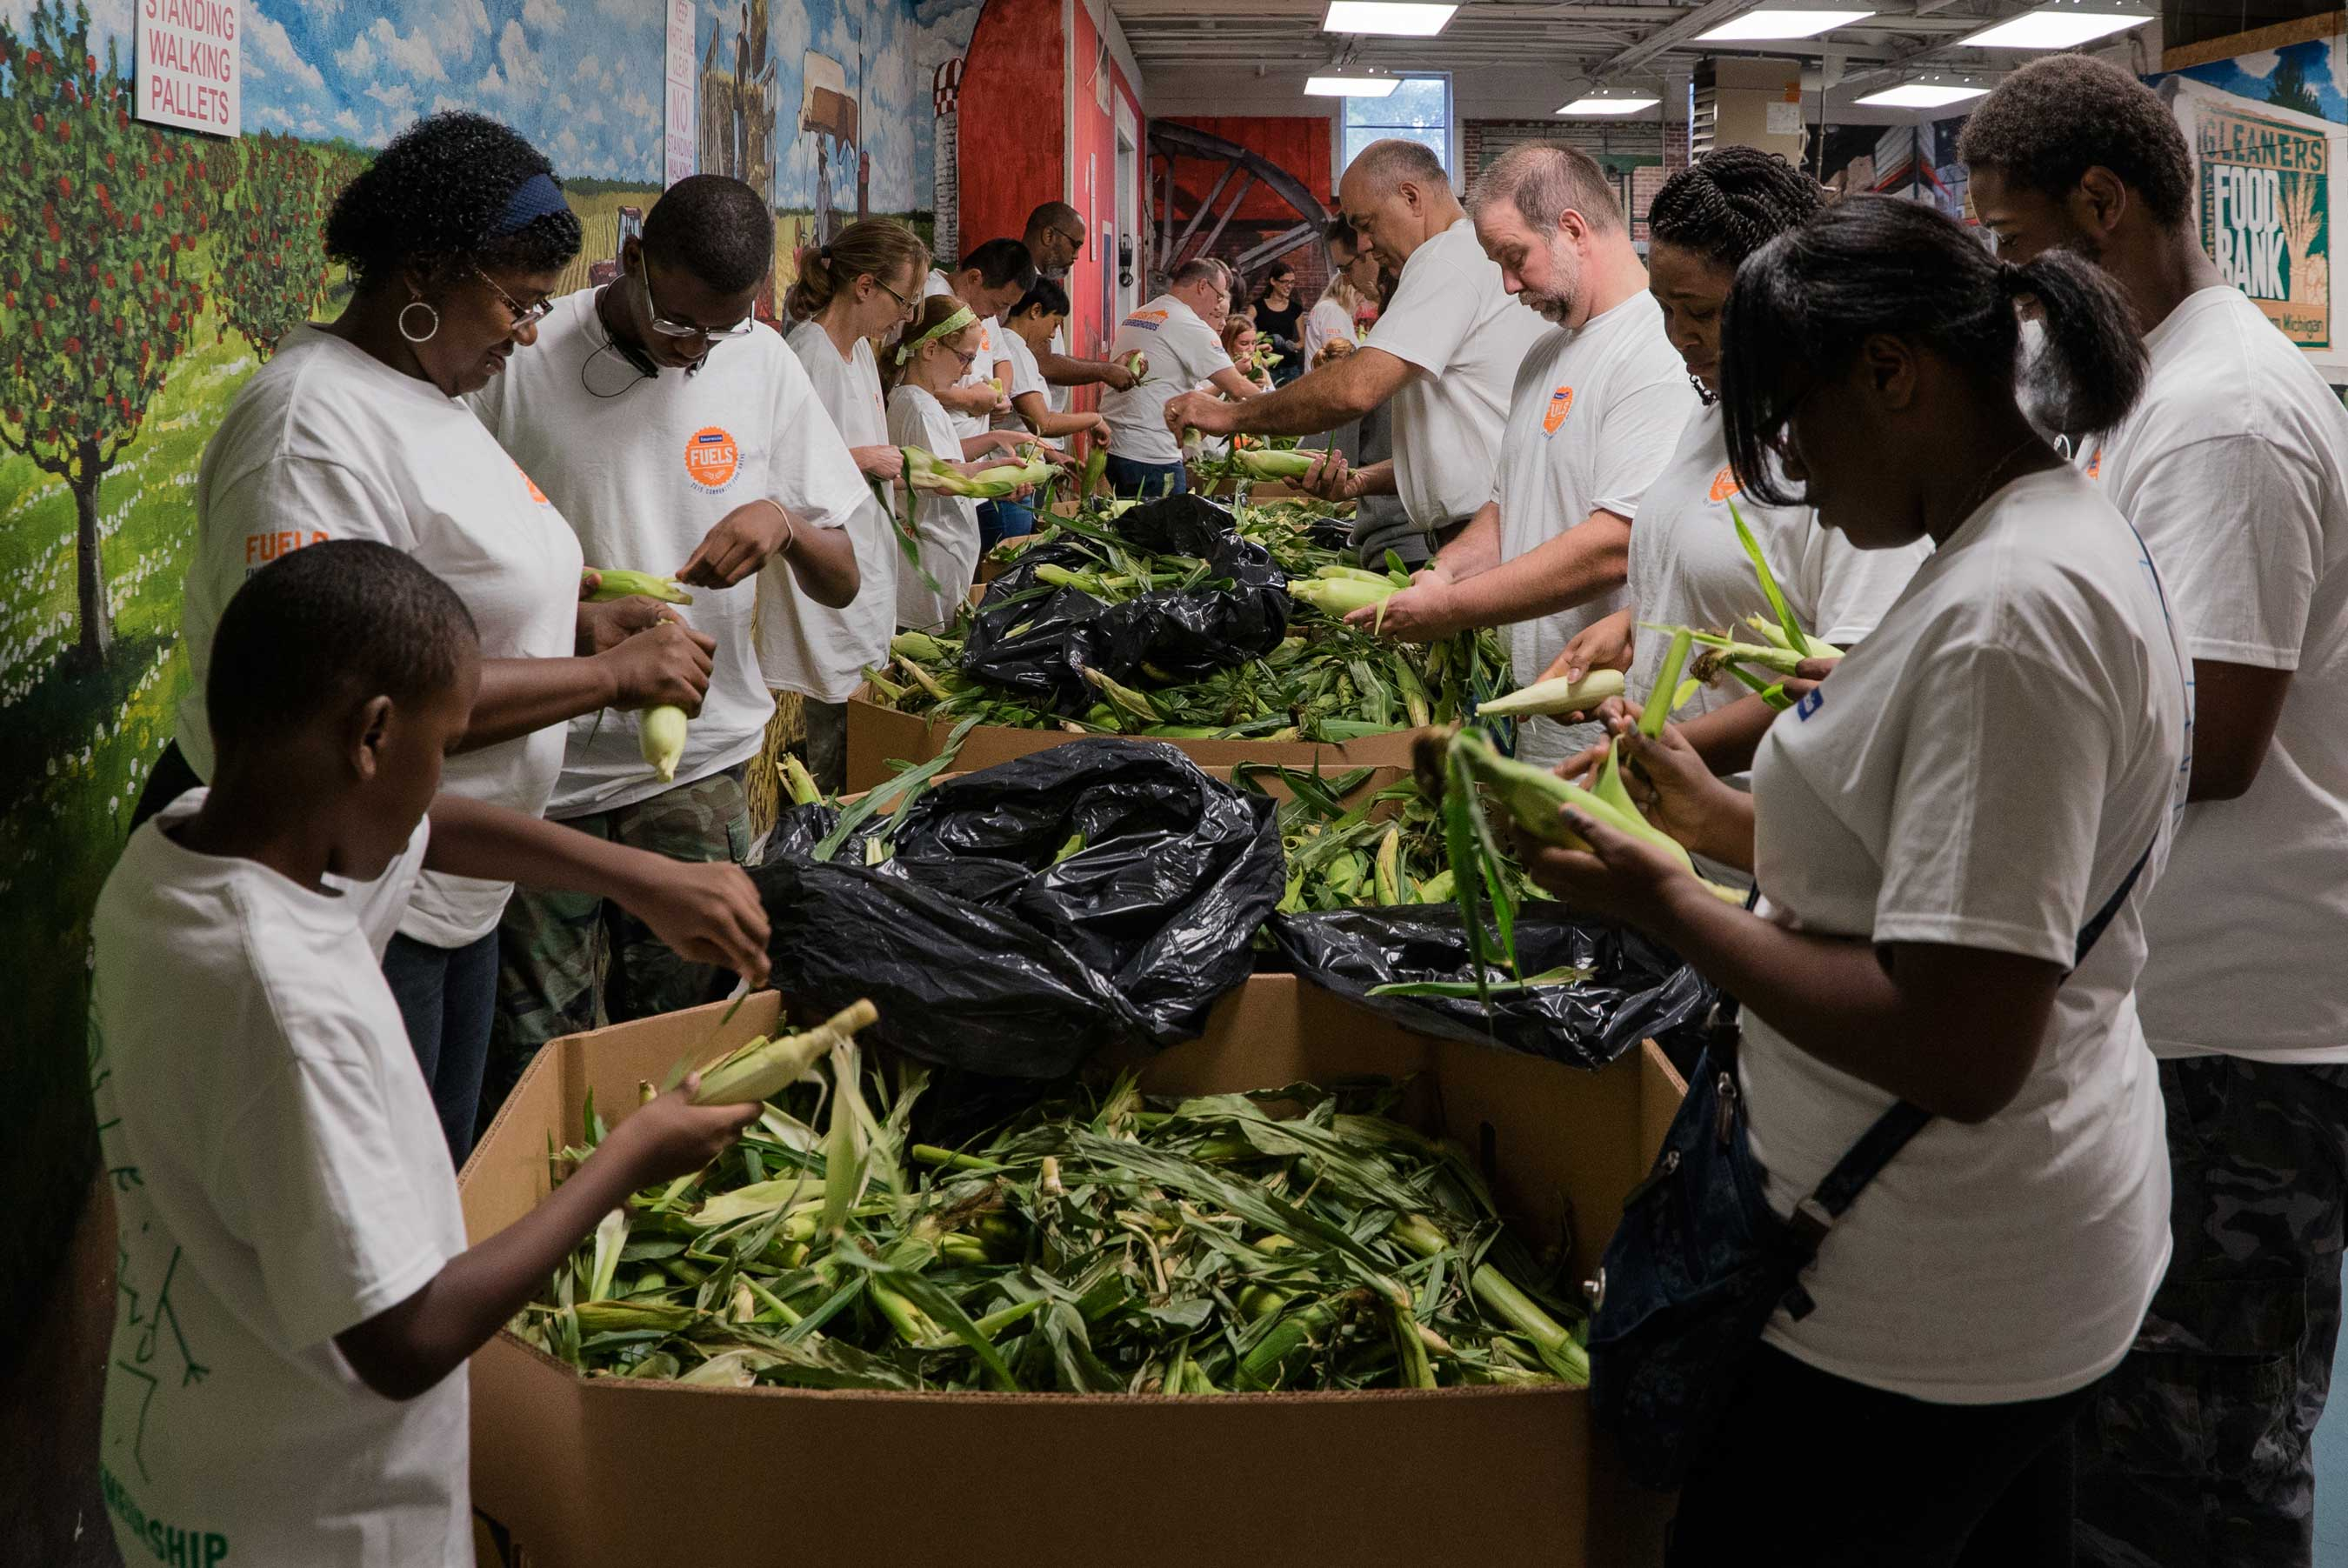 Through a different take on the assembly line, employees from Faurecia's North America headquarters in Auburn Hills, Michigan, show it takes a village to help nourish local communities in need.